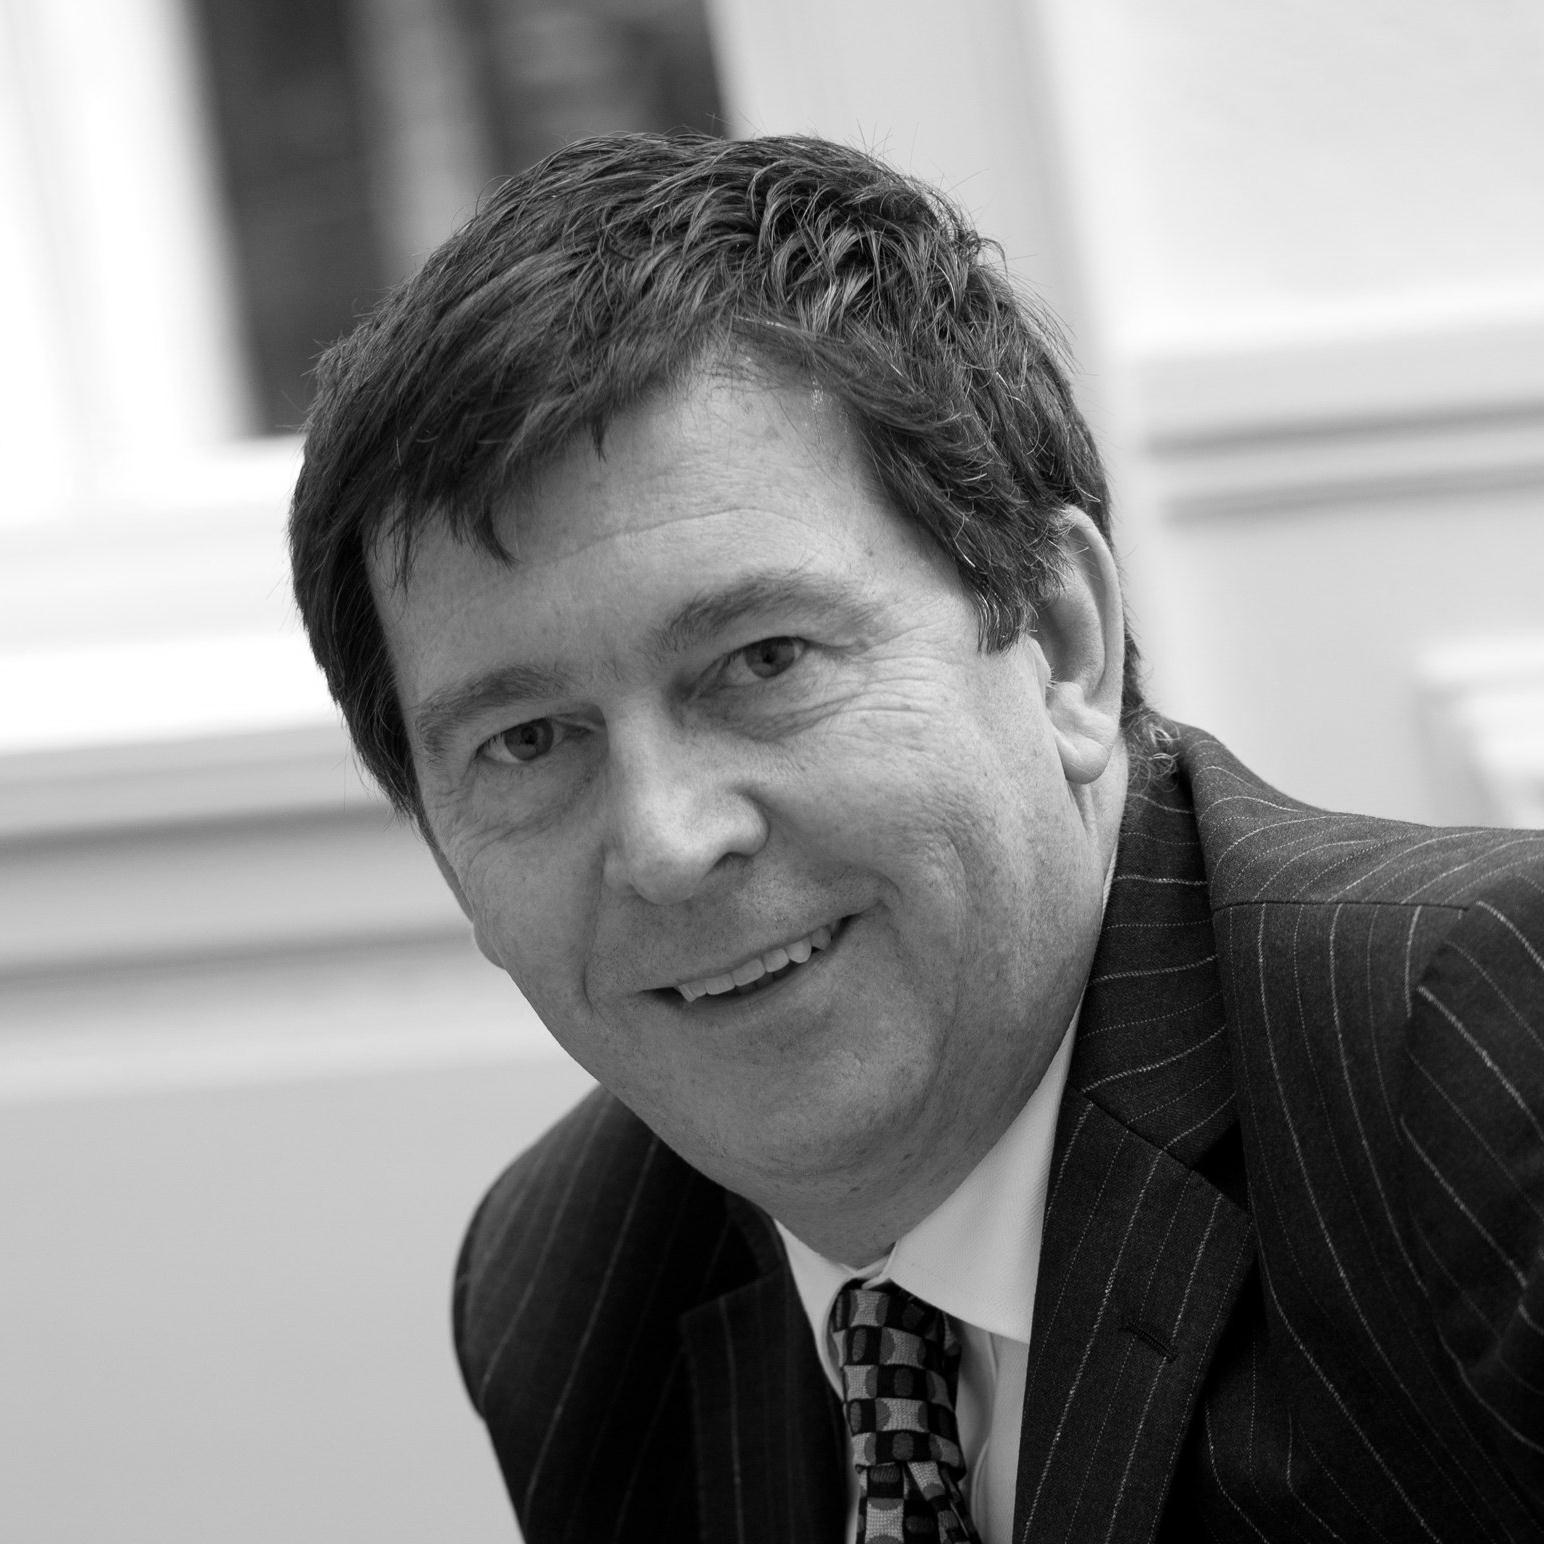 portfolio careers guest blog energise legal guest blog nigel haddon creating my portfolio career